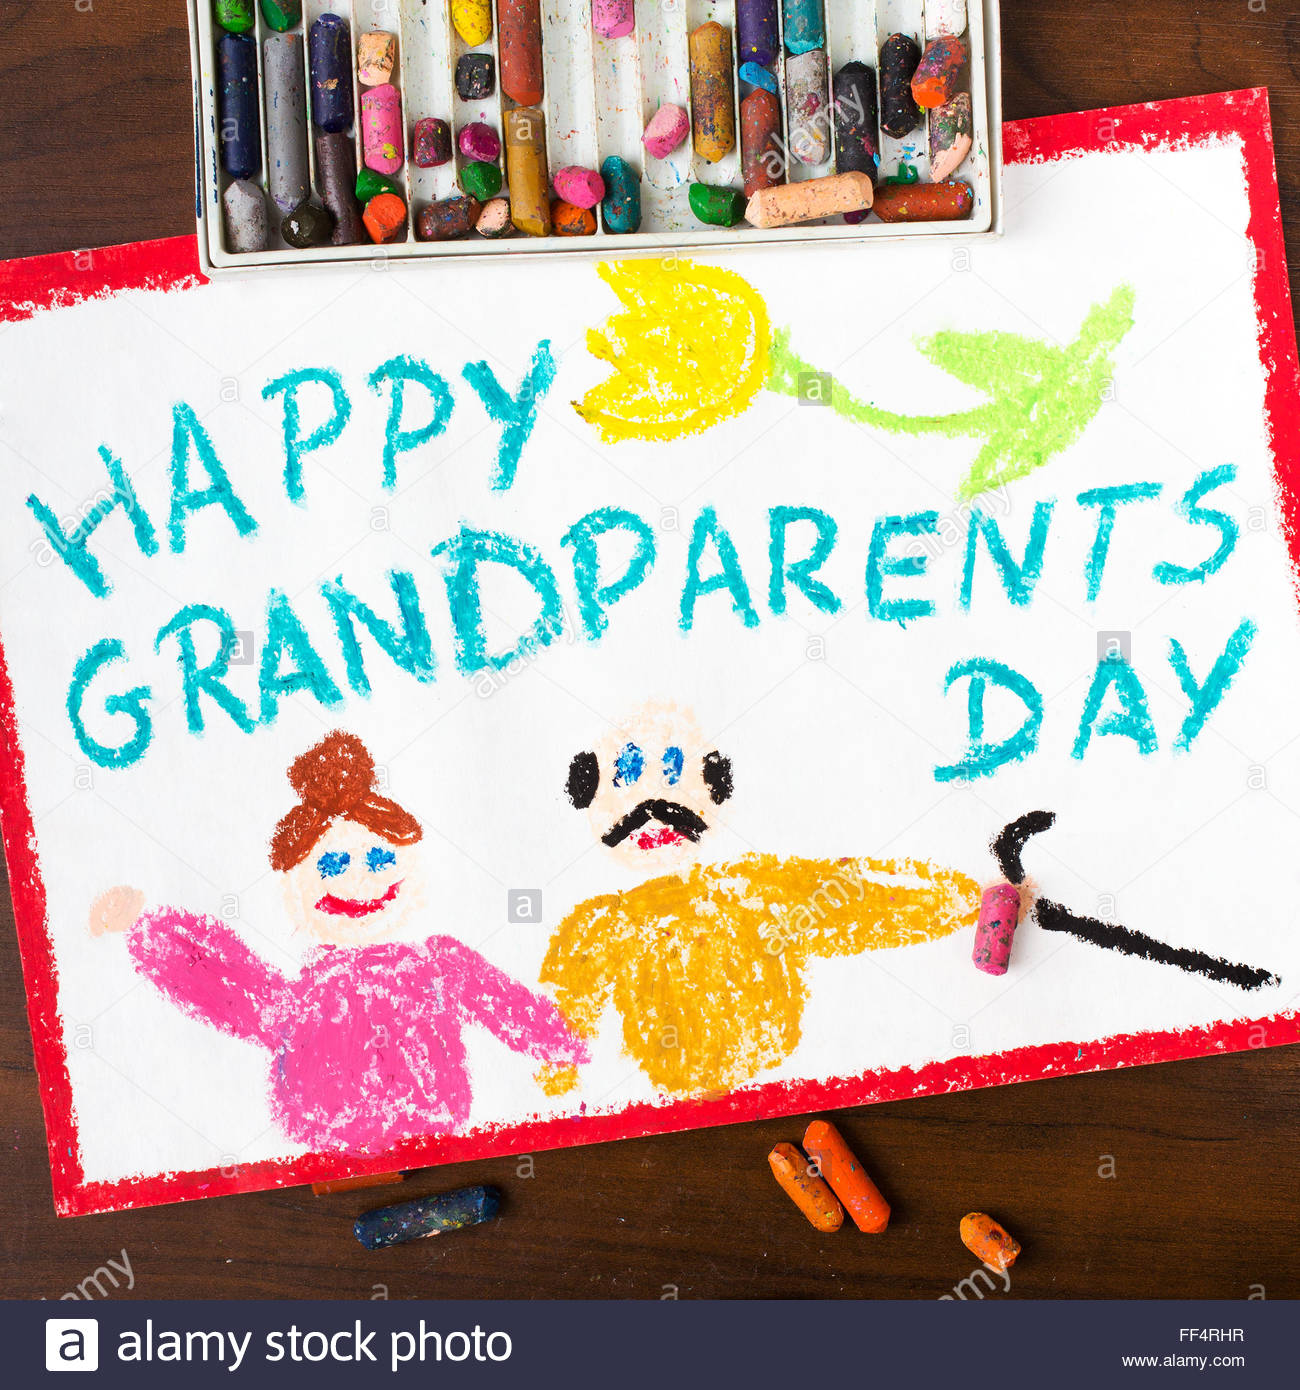 1300x1390 Colorful Drawing Grandparents Day Card Stock Photo 95378019